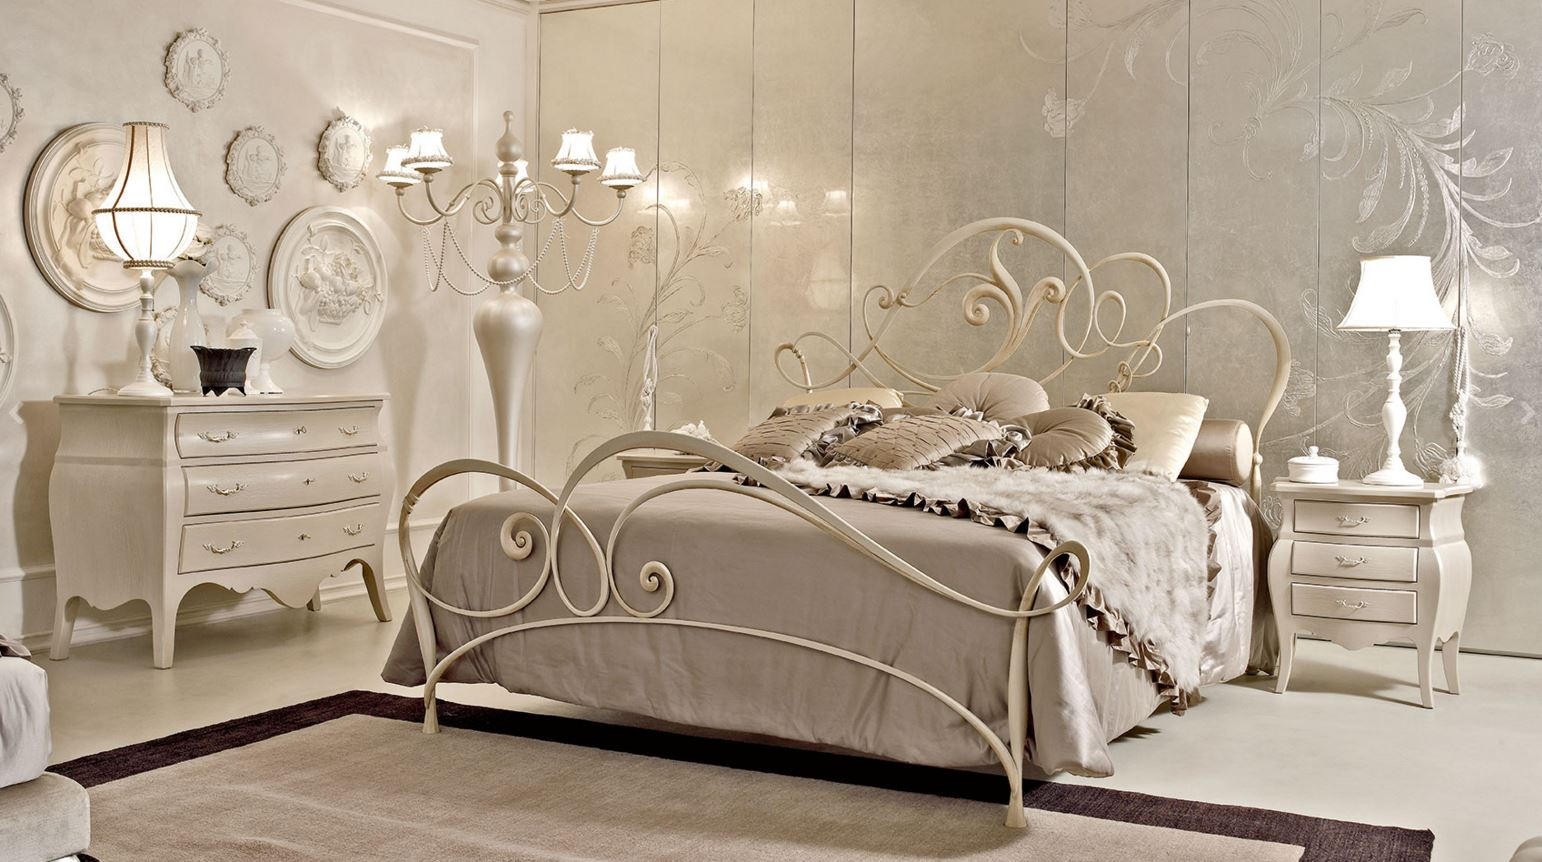 Beautiful Camere Da Letto Shabby Chic Ideas - bakeroffroad.us ...